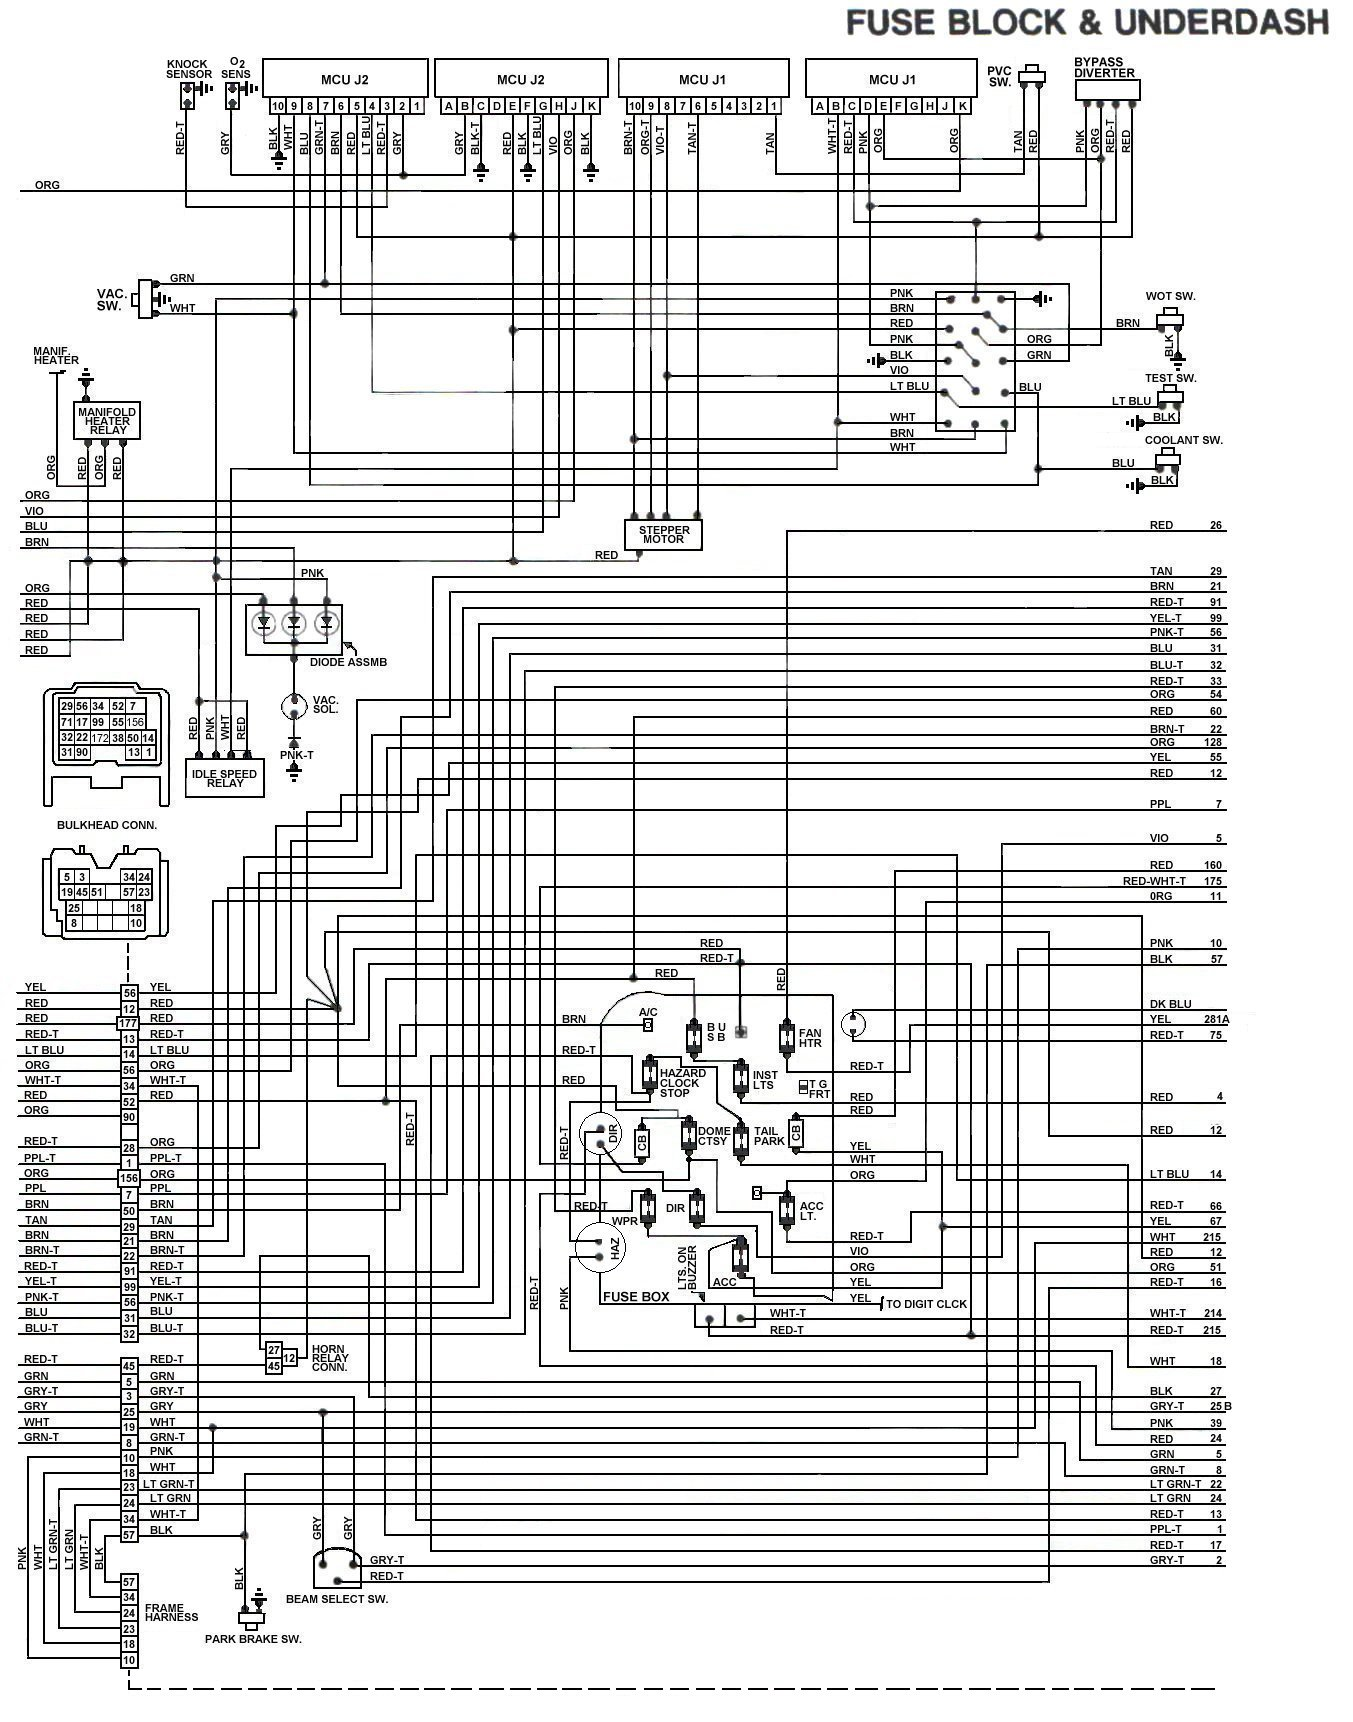 83_FSJ_WiringDiagram_FuseBlock Underdash tom 'oljeep' collins fsj wiring page  at metegol.co